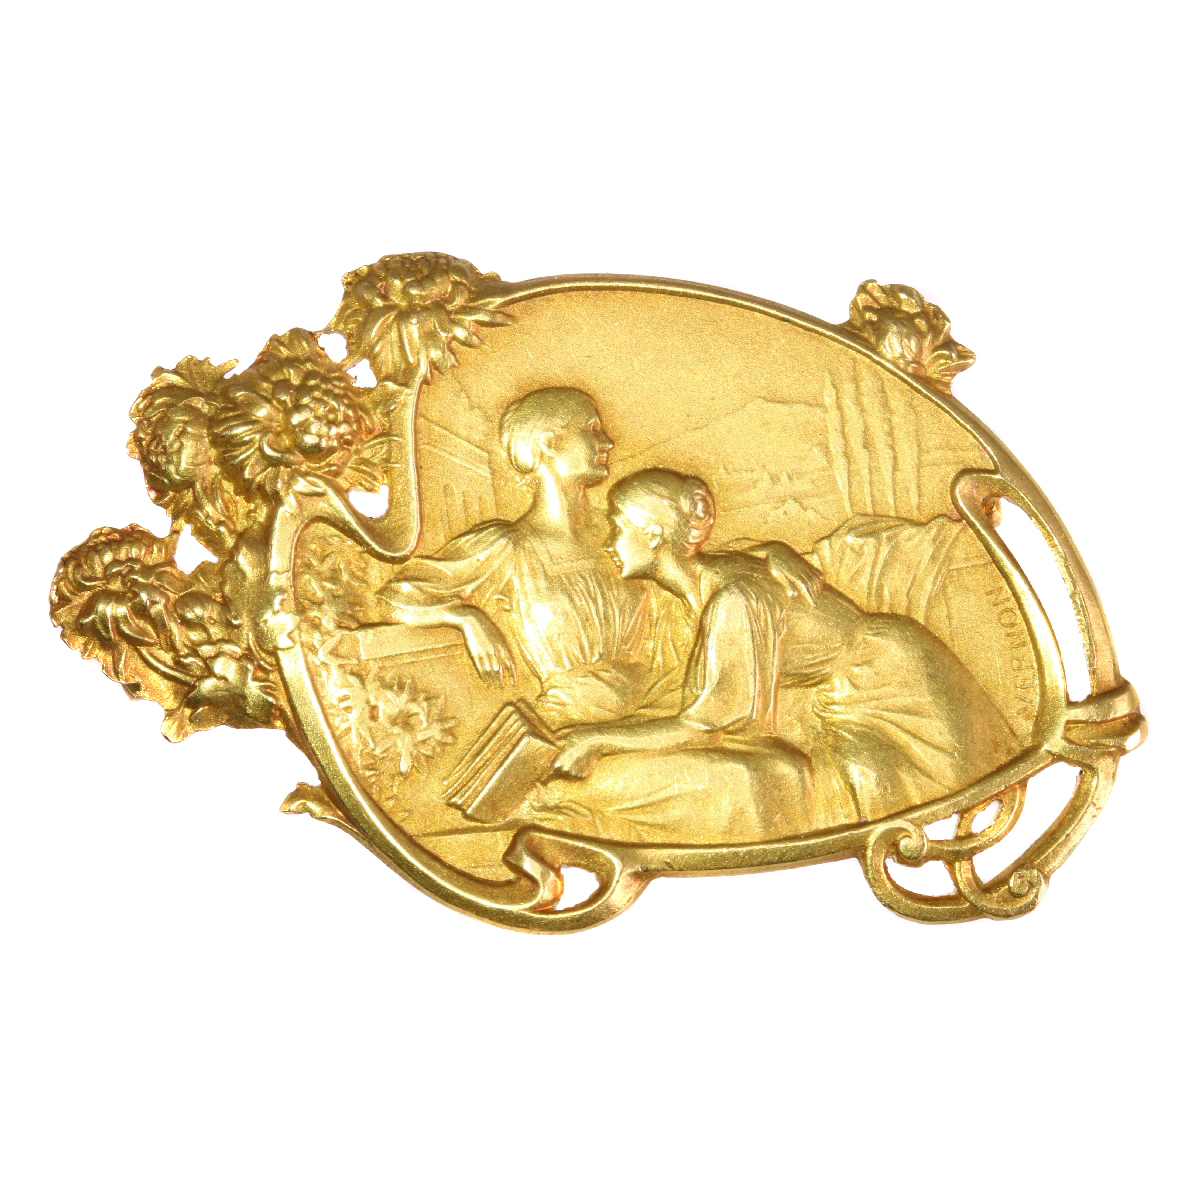 Art Nouveau brooch signed Vernon depicting friendship between two women